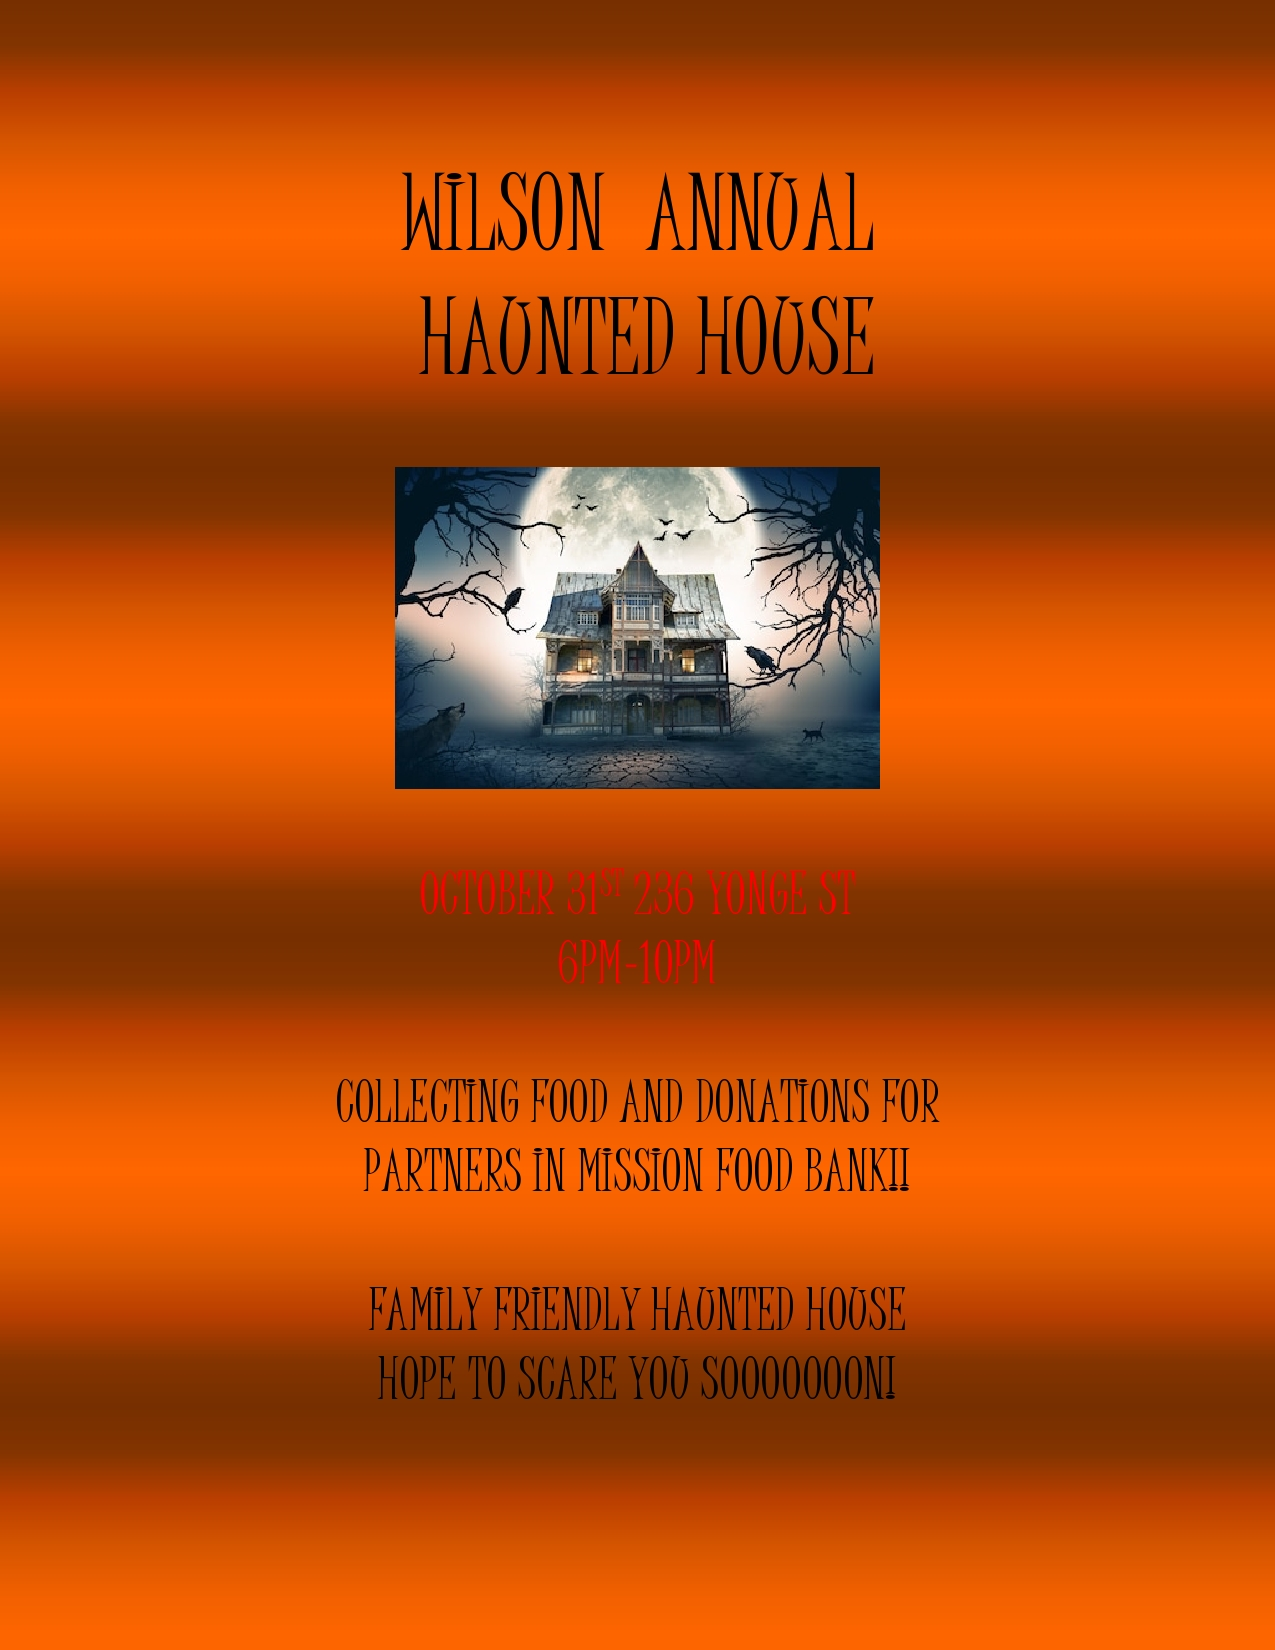 WILSON ANNUAL POSTER